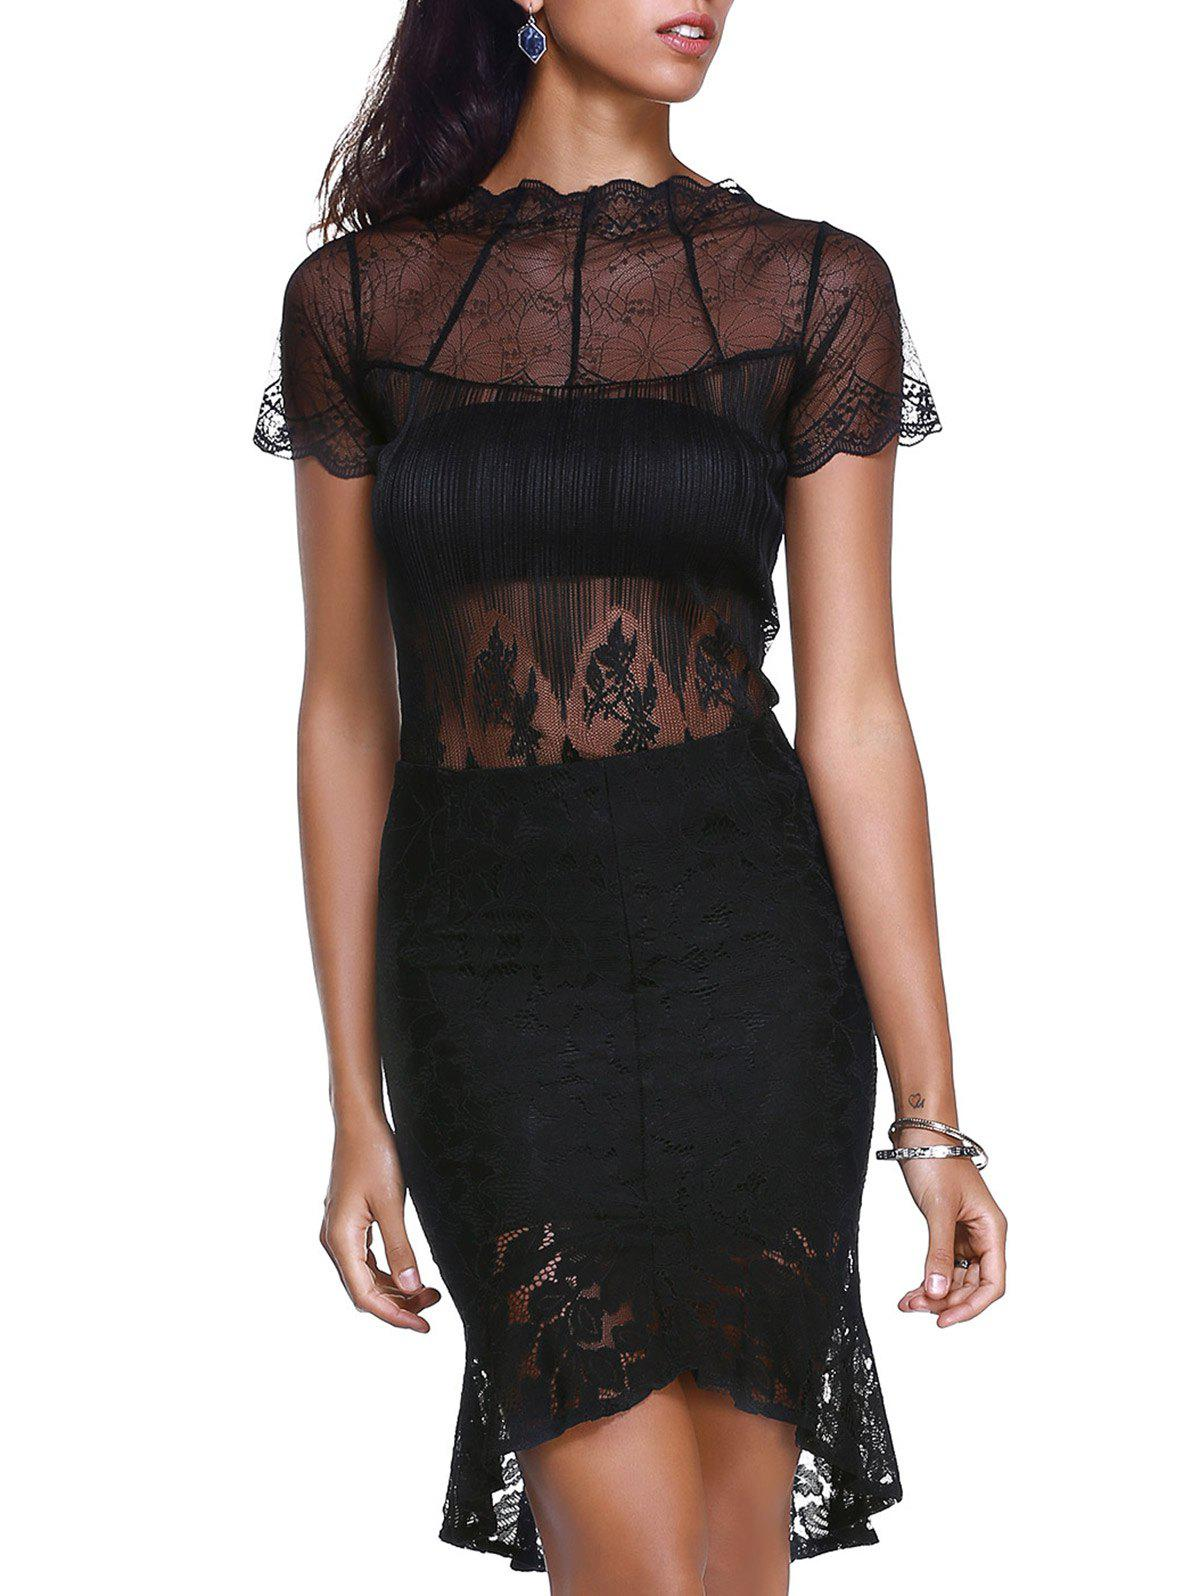 Women's Graceful See-Through Round Neck Top and Pencil Skirt - BLACK ONE SIZE(FIT SIZE XS TO M)